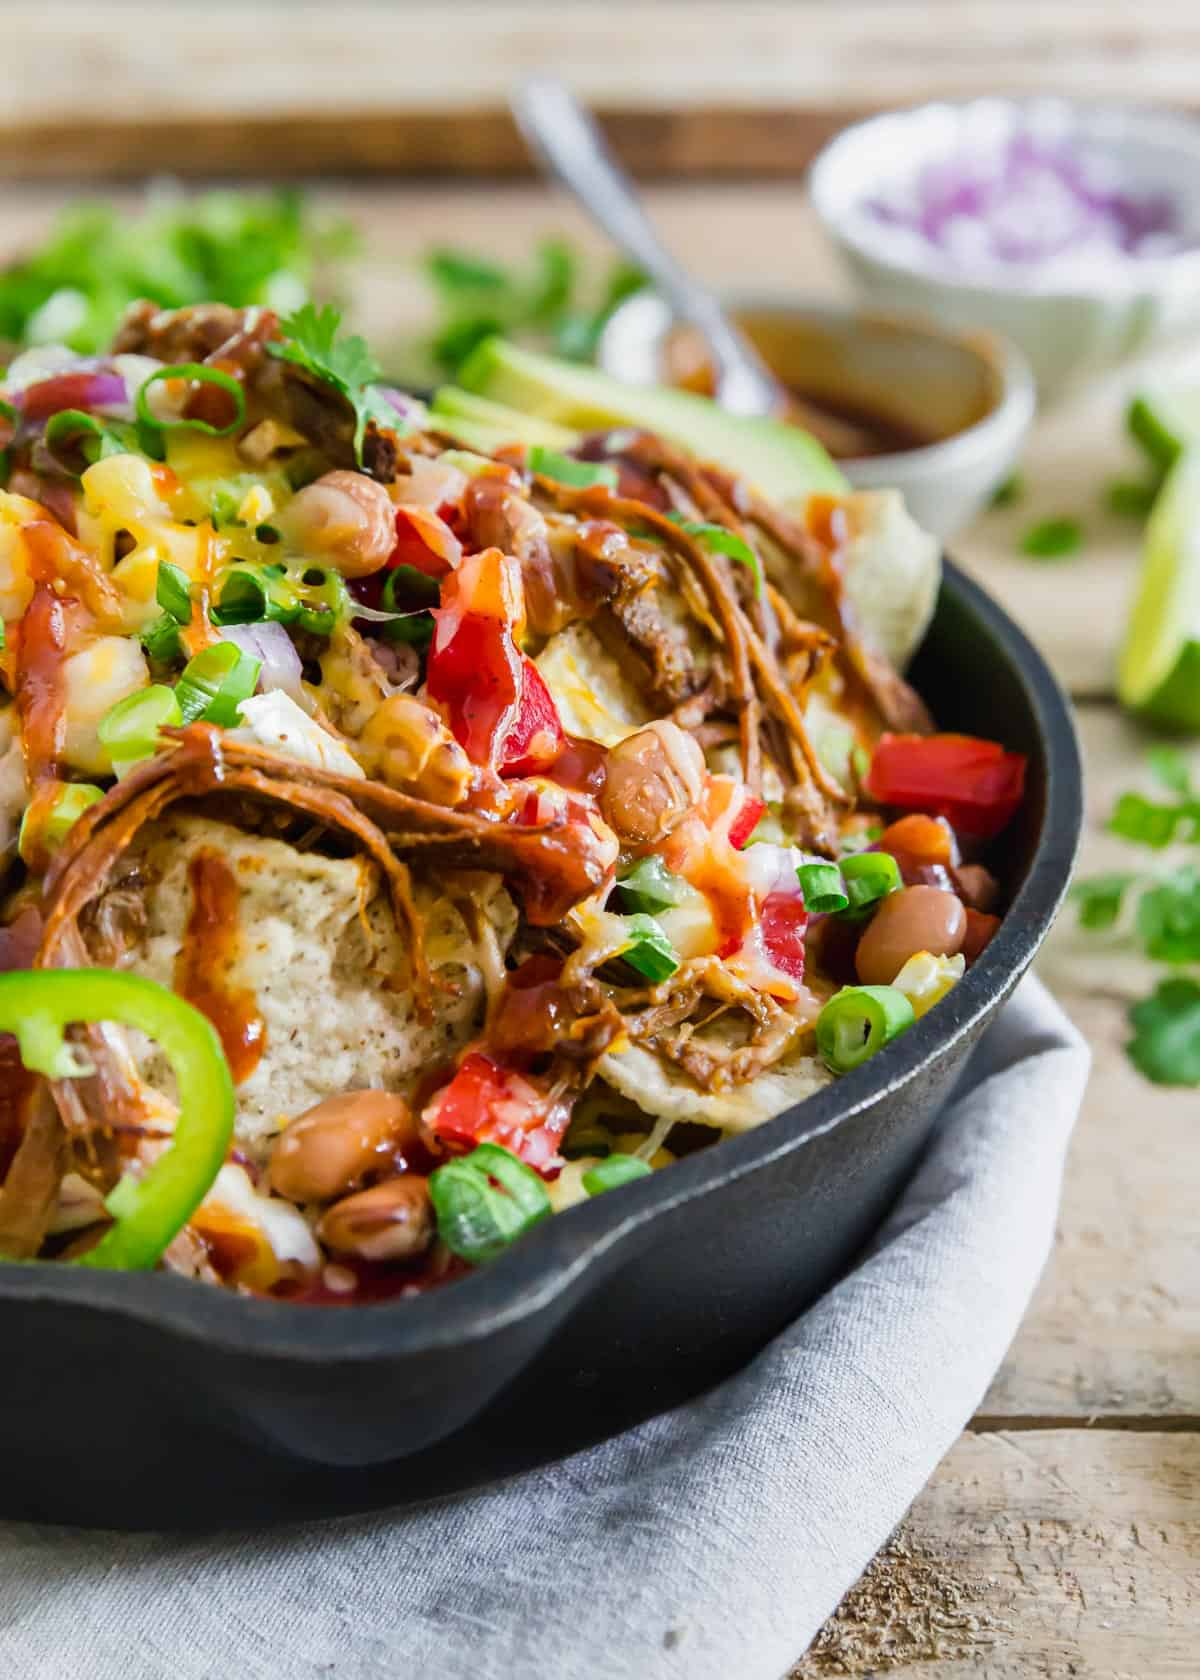 Grab some tortilla chips, some leftover brisket and your favorite toppings to create these easy brisket nachos.